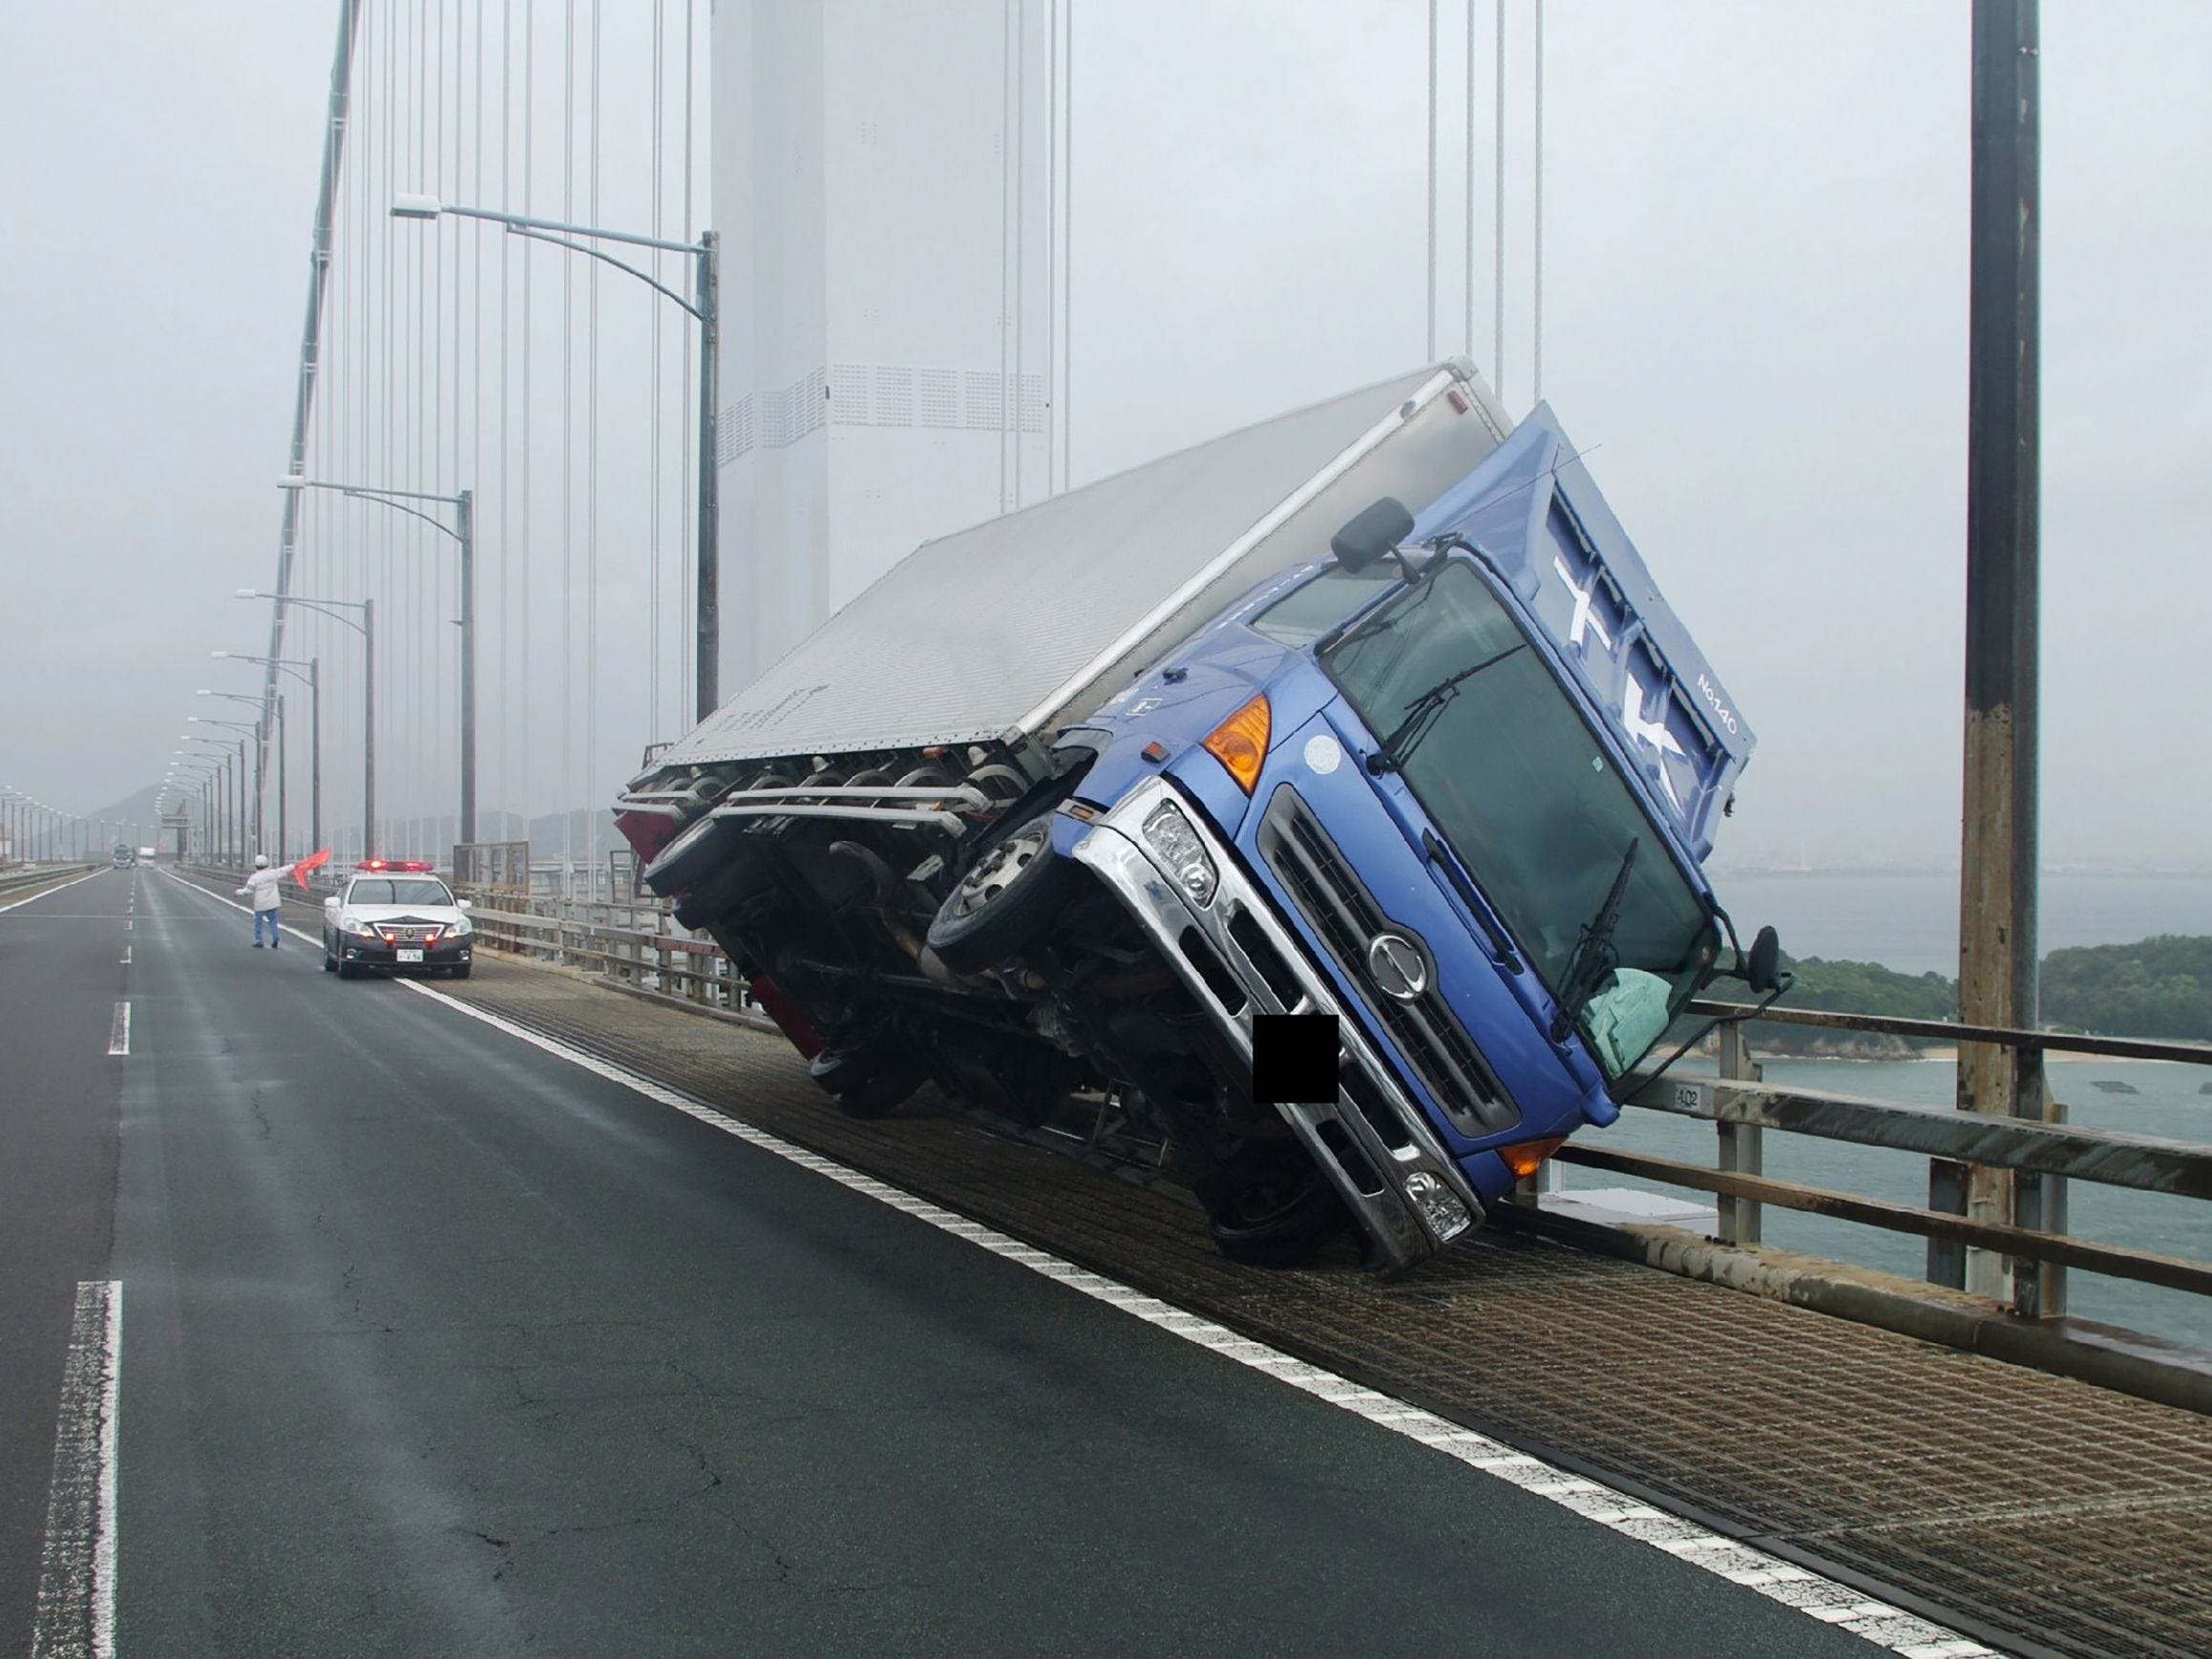 TOPSHOT - This handout photo released by the Kagawa Prefectural Police on September 4, 2018 and received via Jiji Press shows a truck sitting at an angle after being blown over by strong winds caused by Typhoon Jebi on the Seto Ohashi bridge in Sakade, Kagawa prefecture on Japan's Shikoku island. - The strongest typhoon to hit Japan in 25 years made landfall on September 4, the country's weather agency said, bringing violent winds and heavy rainfall that prompted evacuation warnings. (Photo by JIJI PRESS / various sources / AFP) / - Japan OUT / EDITOR'S NOTE: Car's licence plate was digitally blocked by Kagawa prefectural police